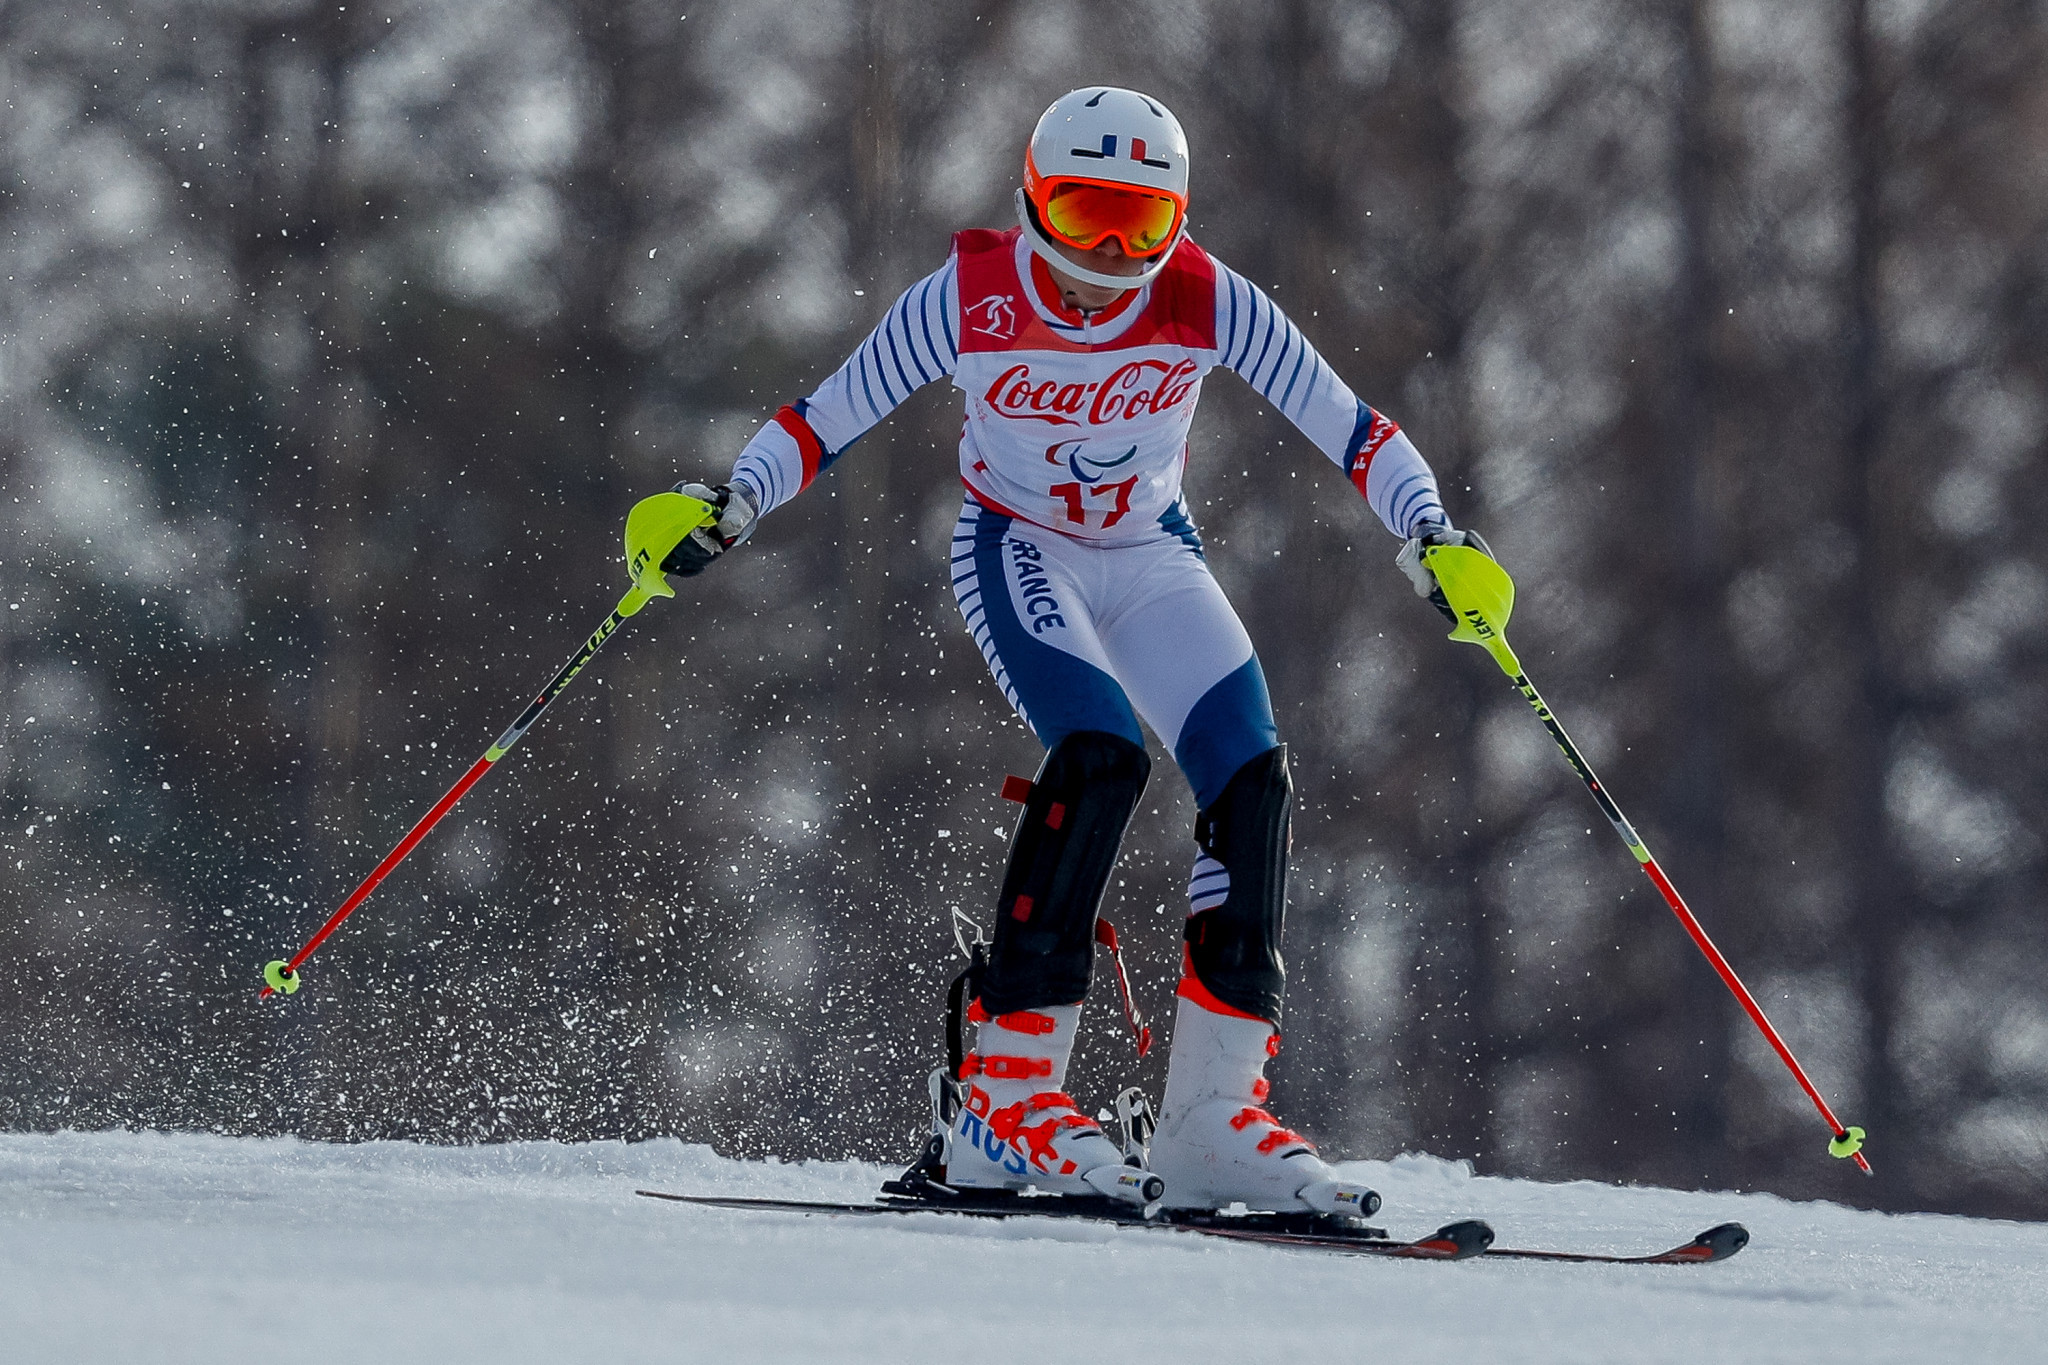 France's Arthur Bauchet is among the leading names in the field for the World Para Alpine Skiing World Cup in Veysonnaz ©Getty Images